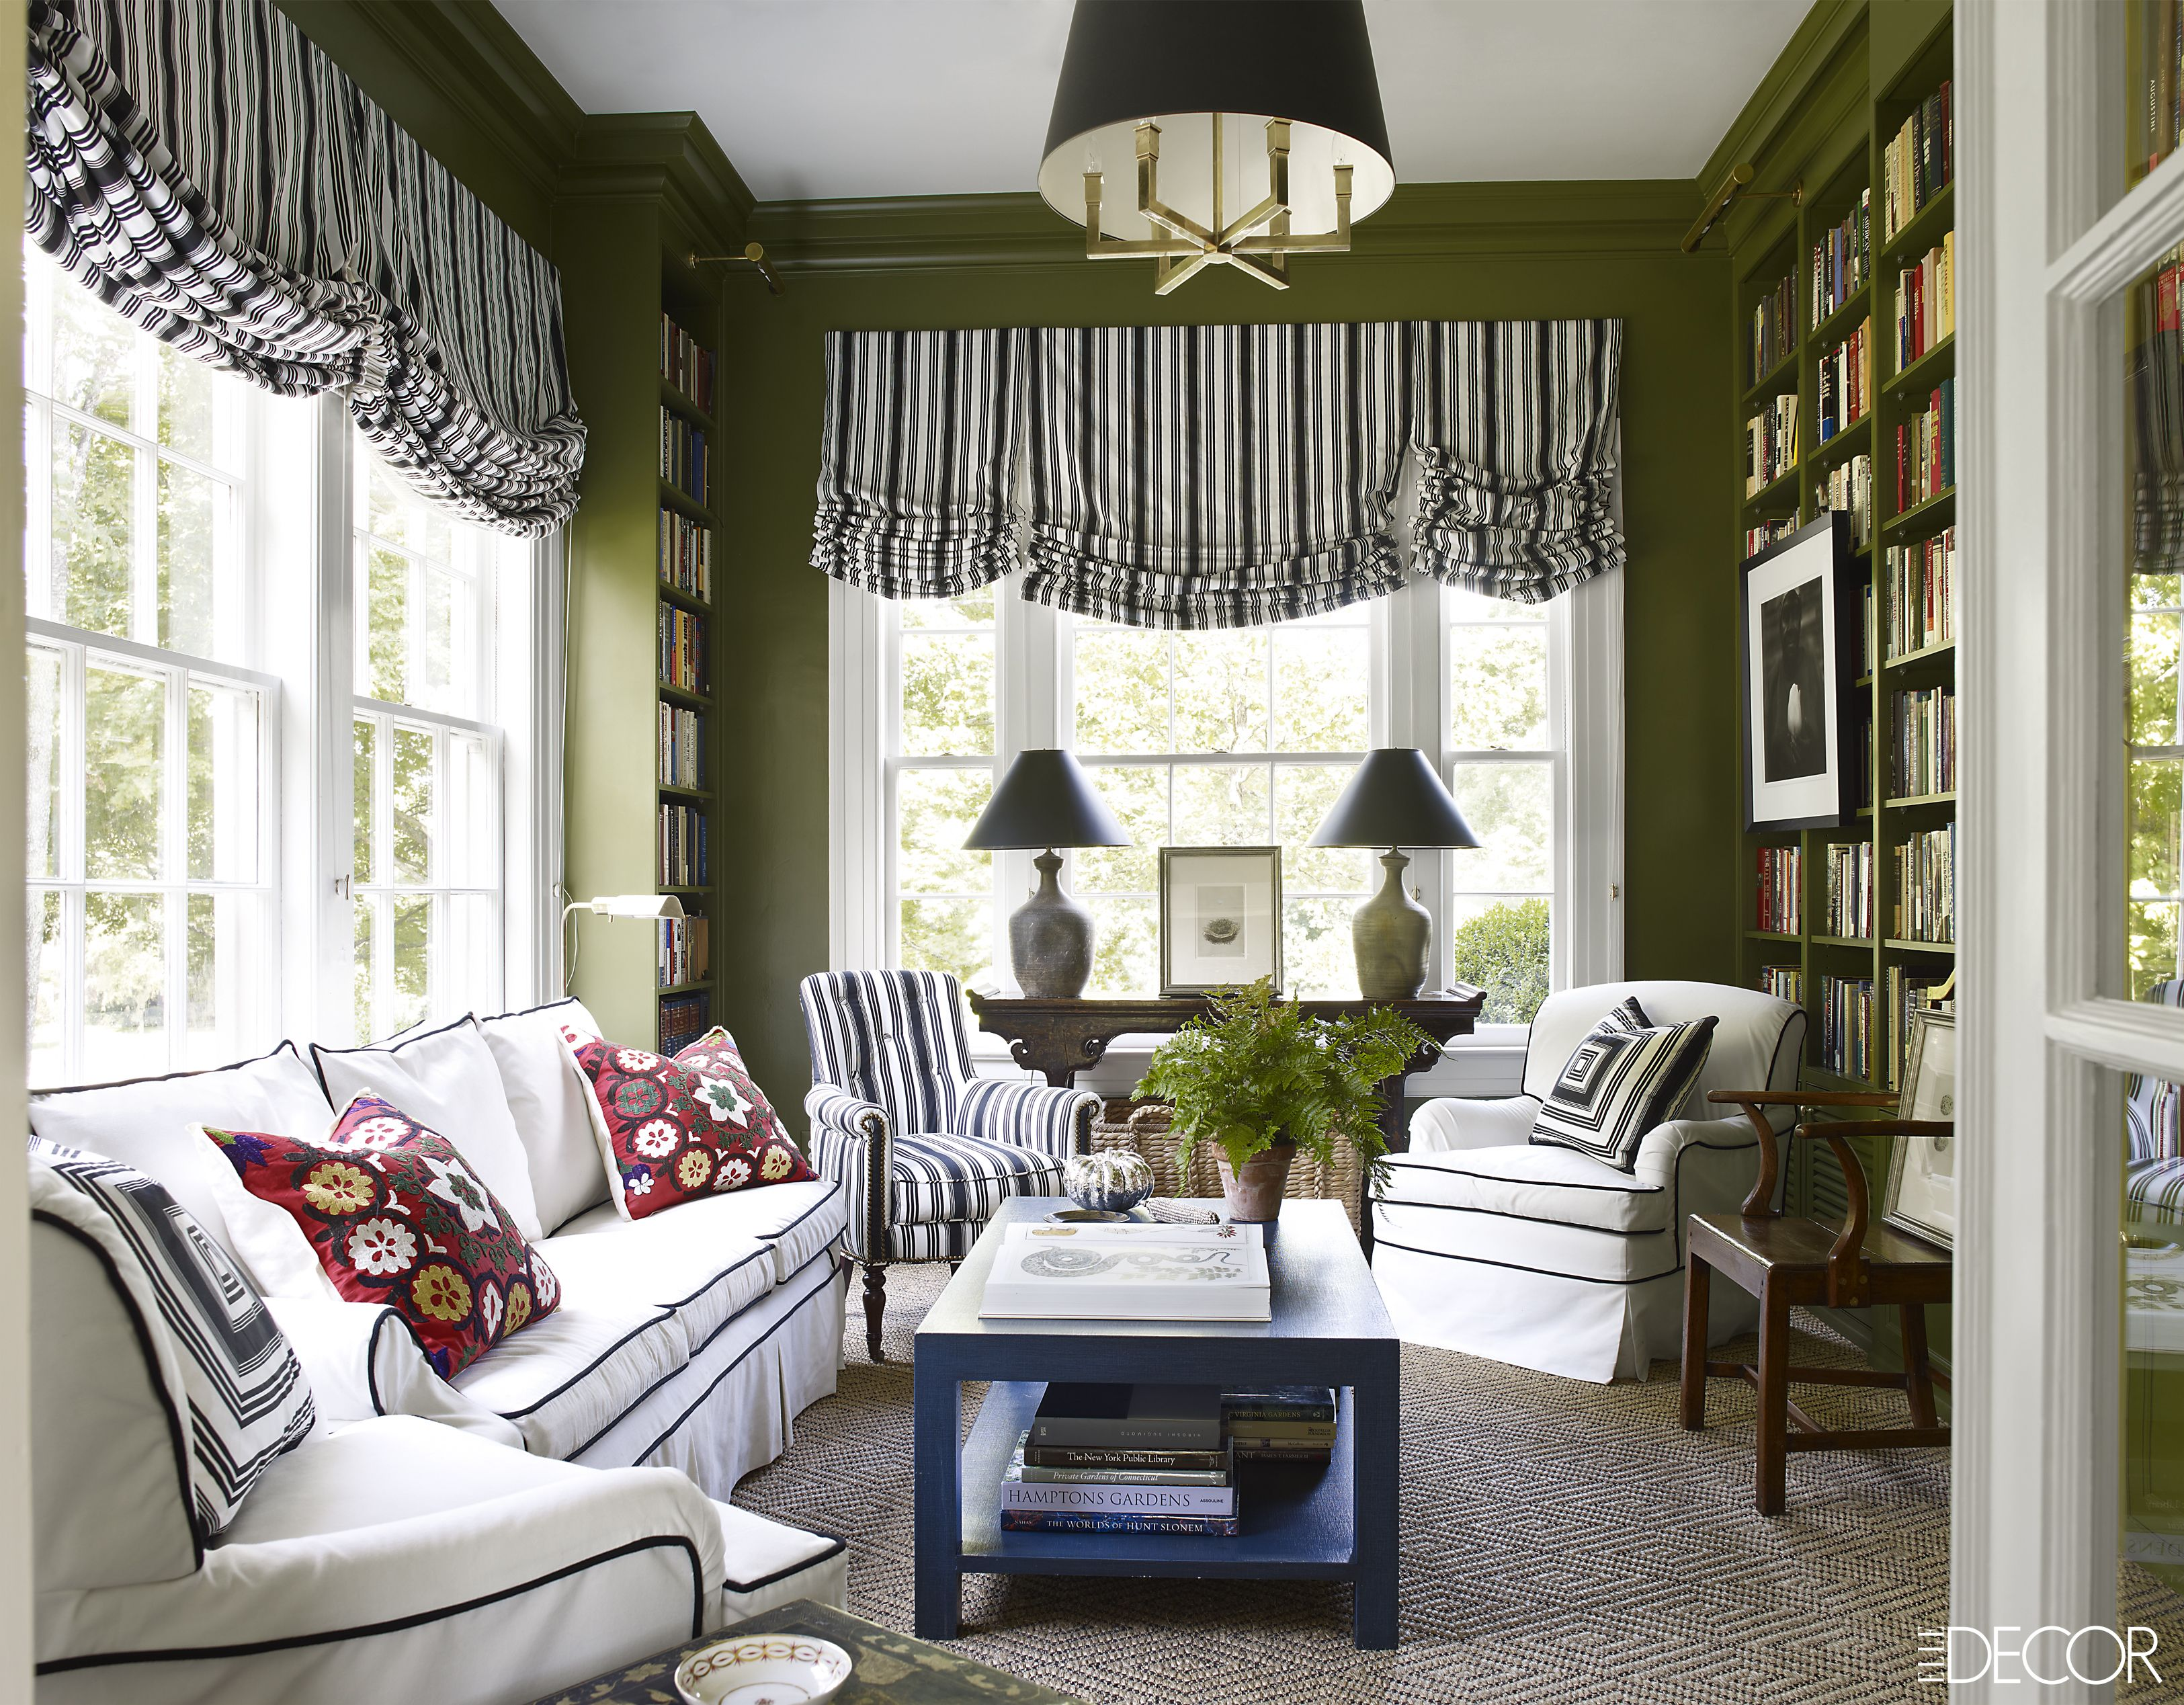 Olive Green Paint Color U0026 Decor Ideas   Olive Green Walls, Furniture U0026  Decorations